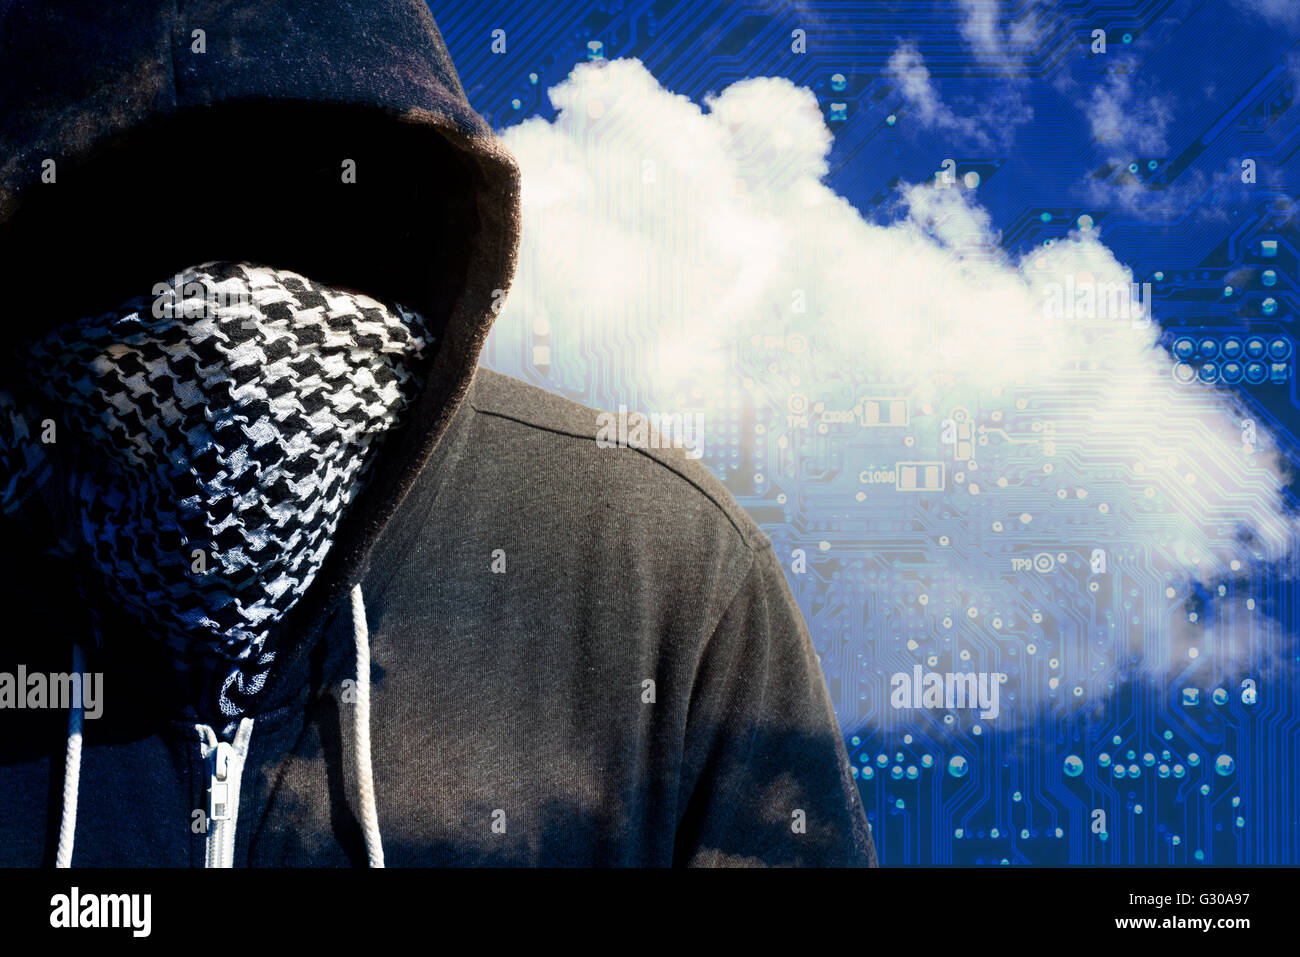 Hooded and masked computer hacker thief with a cloud computer based background and tech backdrop. Unknown technology - Stock Image